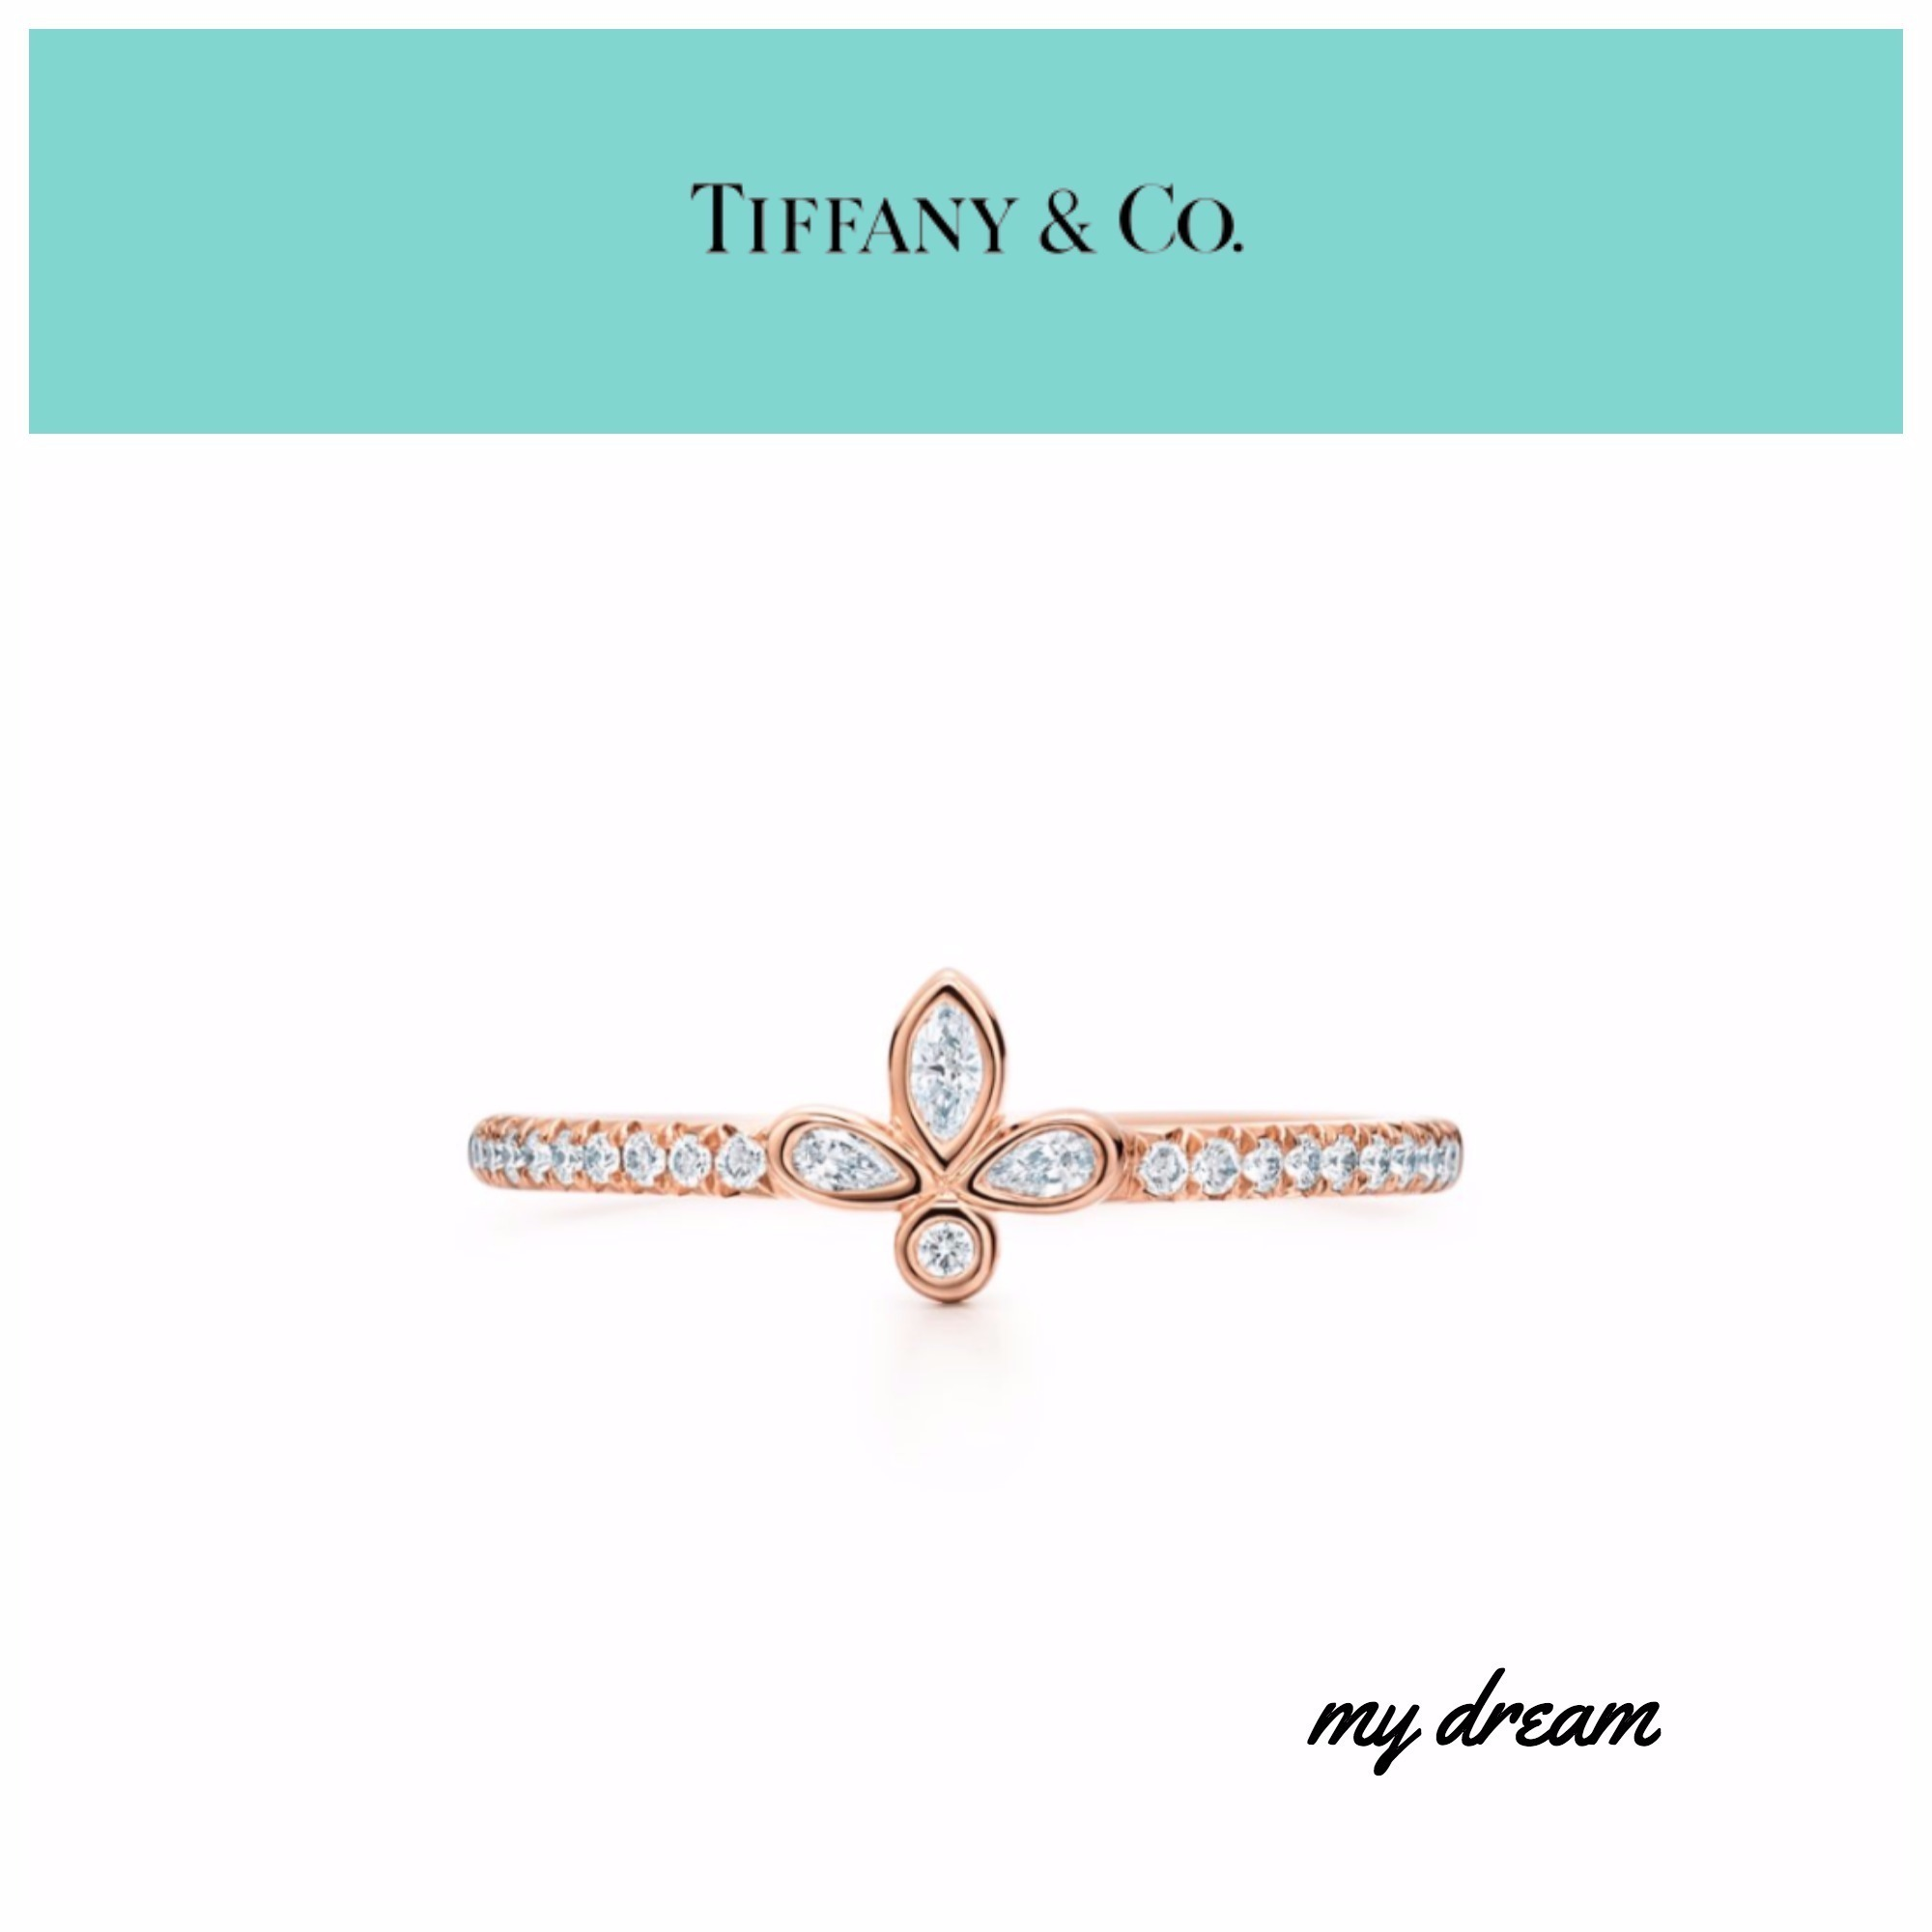 【Tiffany & Co】Fleur de Lis Band Ring with Diamonds RG